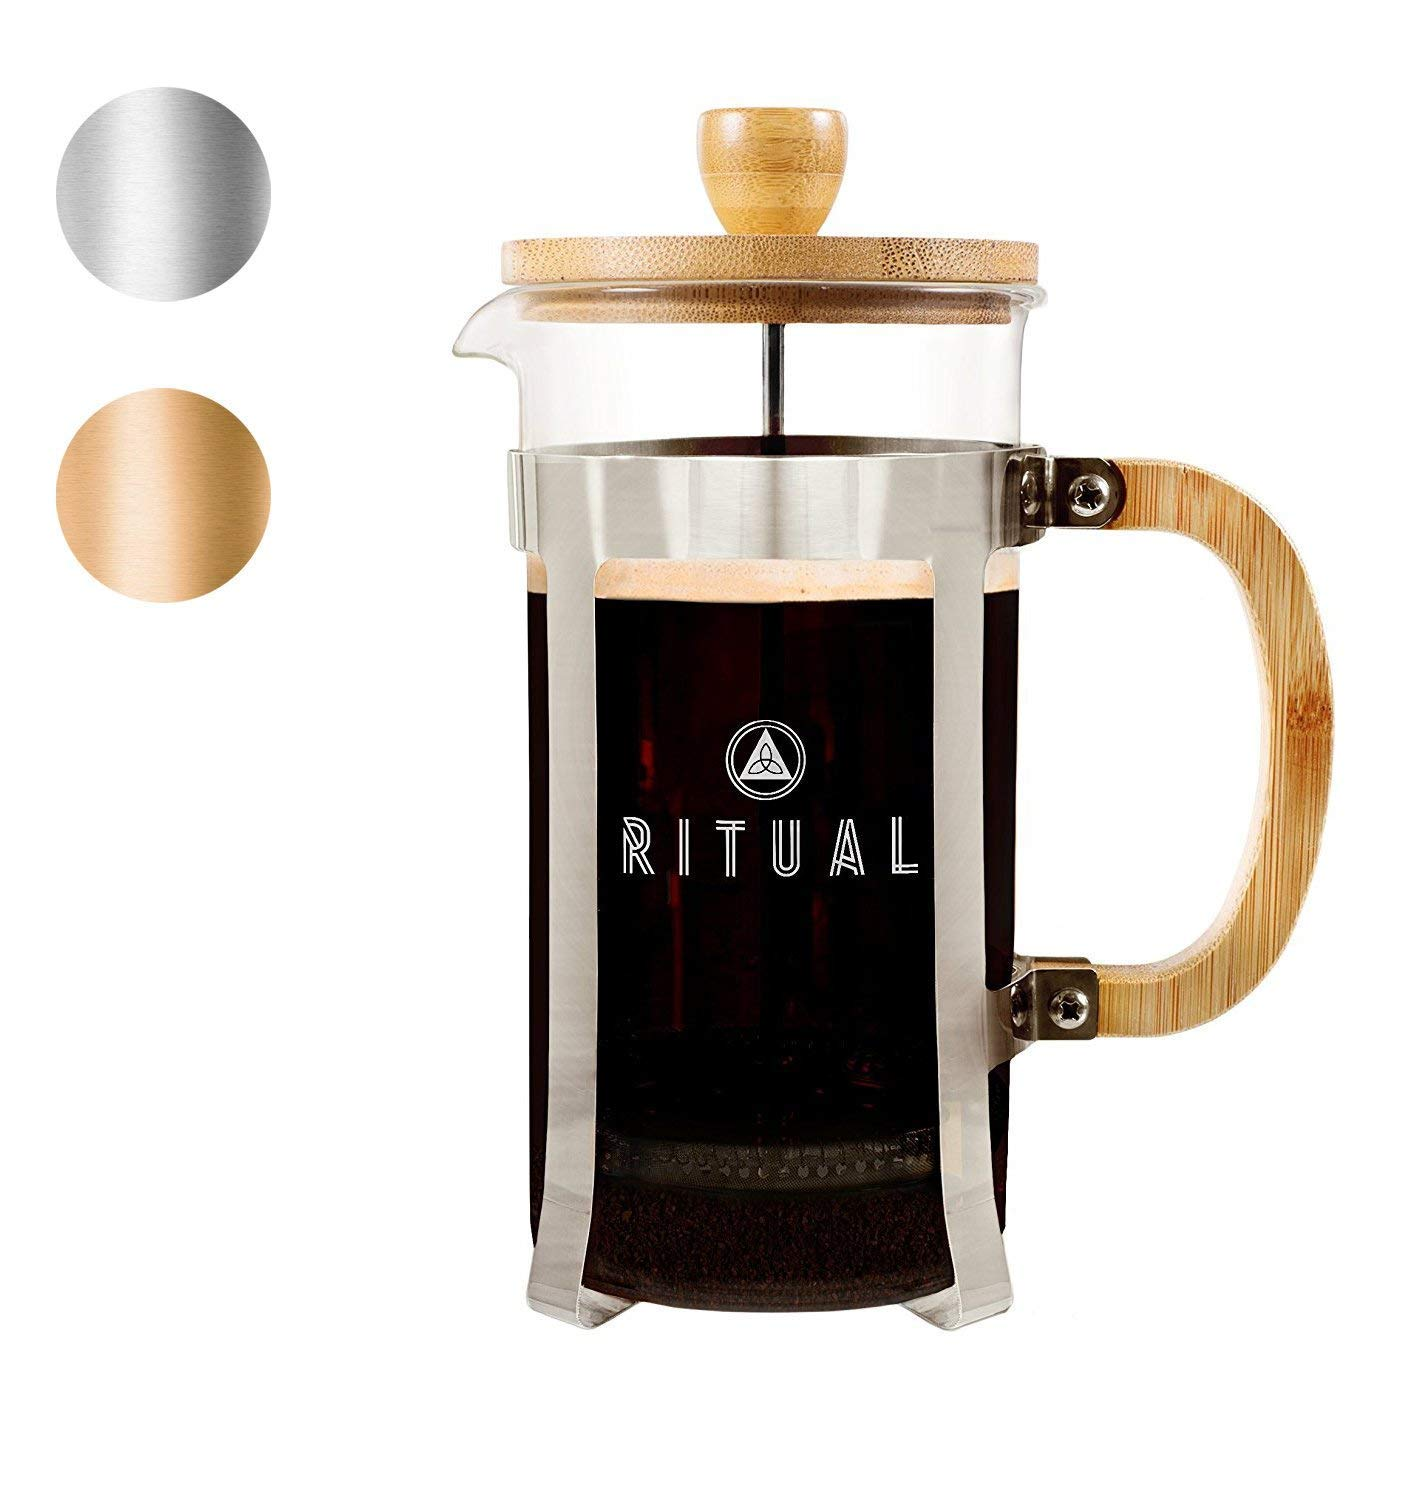 Antique French Coffee Press Ikea Upphetta Tea 04l Glass Ampamp Stainless Steel Ritual Improved And Bamboo Design 1425x1500